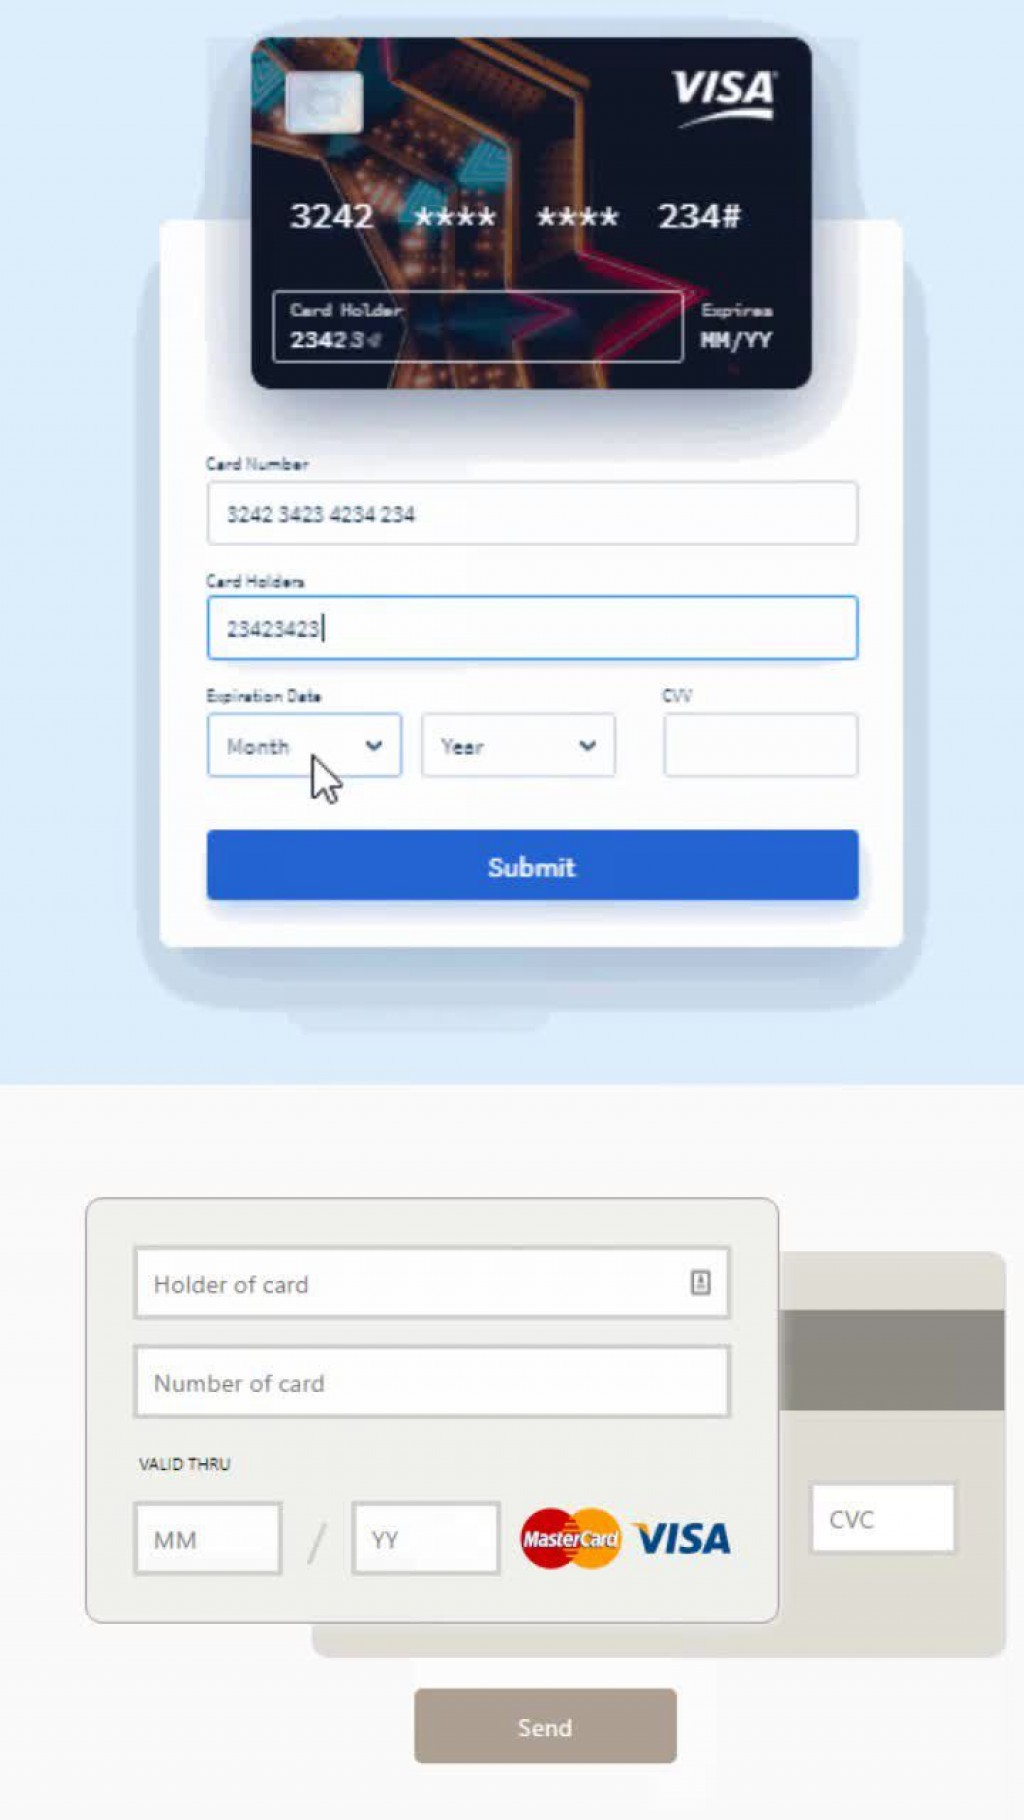 008 Phenomenal Credit Card Payment Form Template Html Inspiration Large